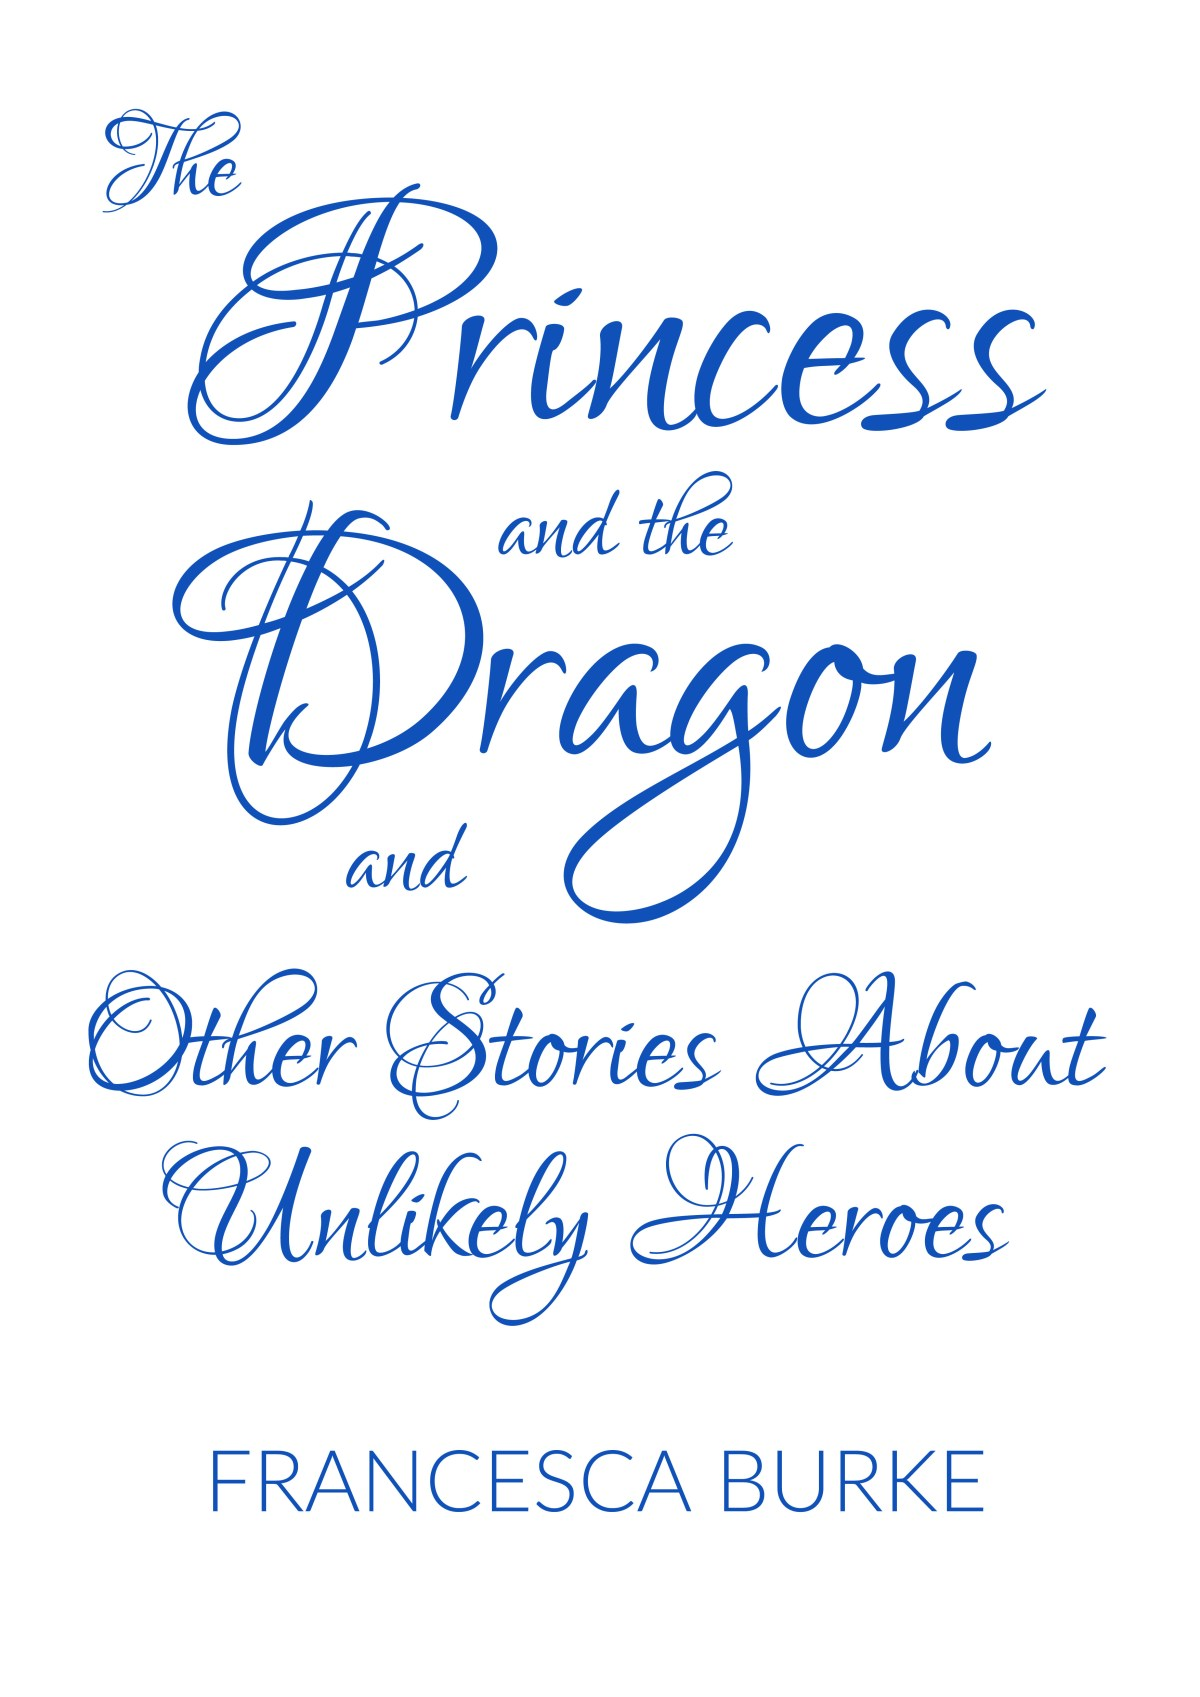 The Princess and the Dragon and Other Stories About Unlikely Heroes by Francesca Burke Cover